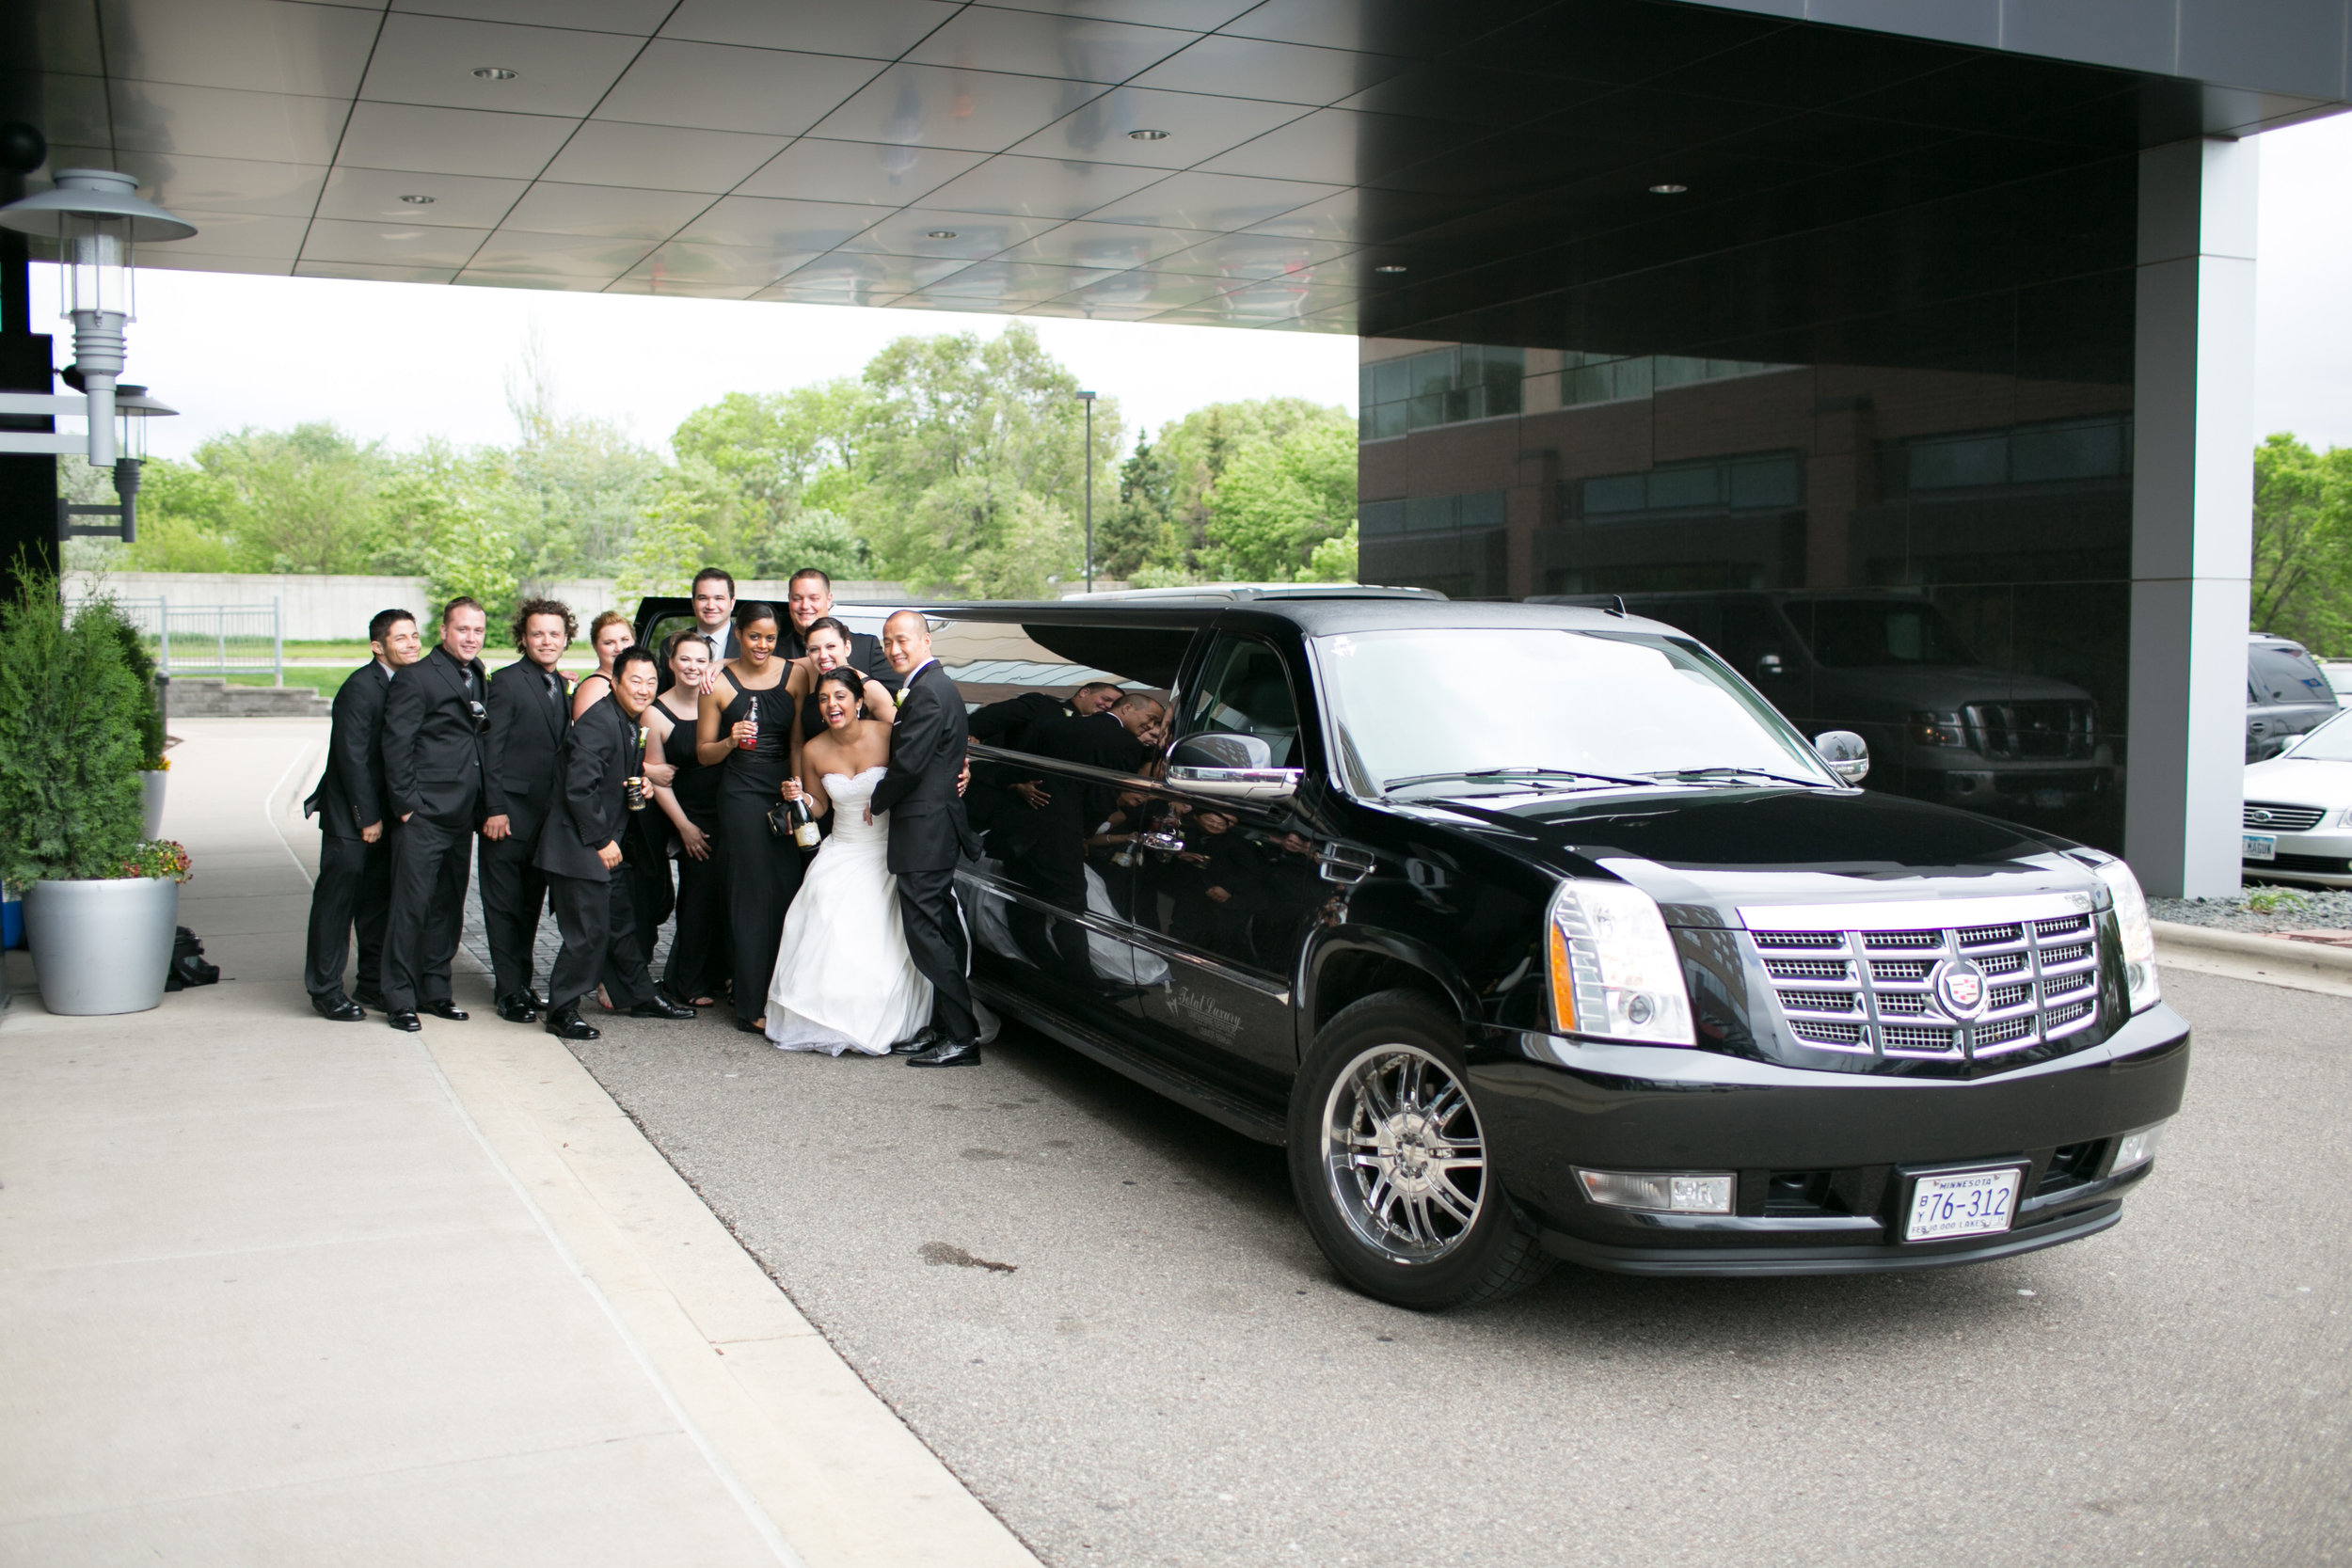 Chauffeured stretch limousines